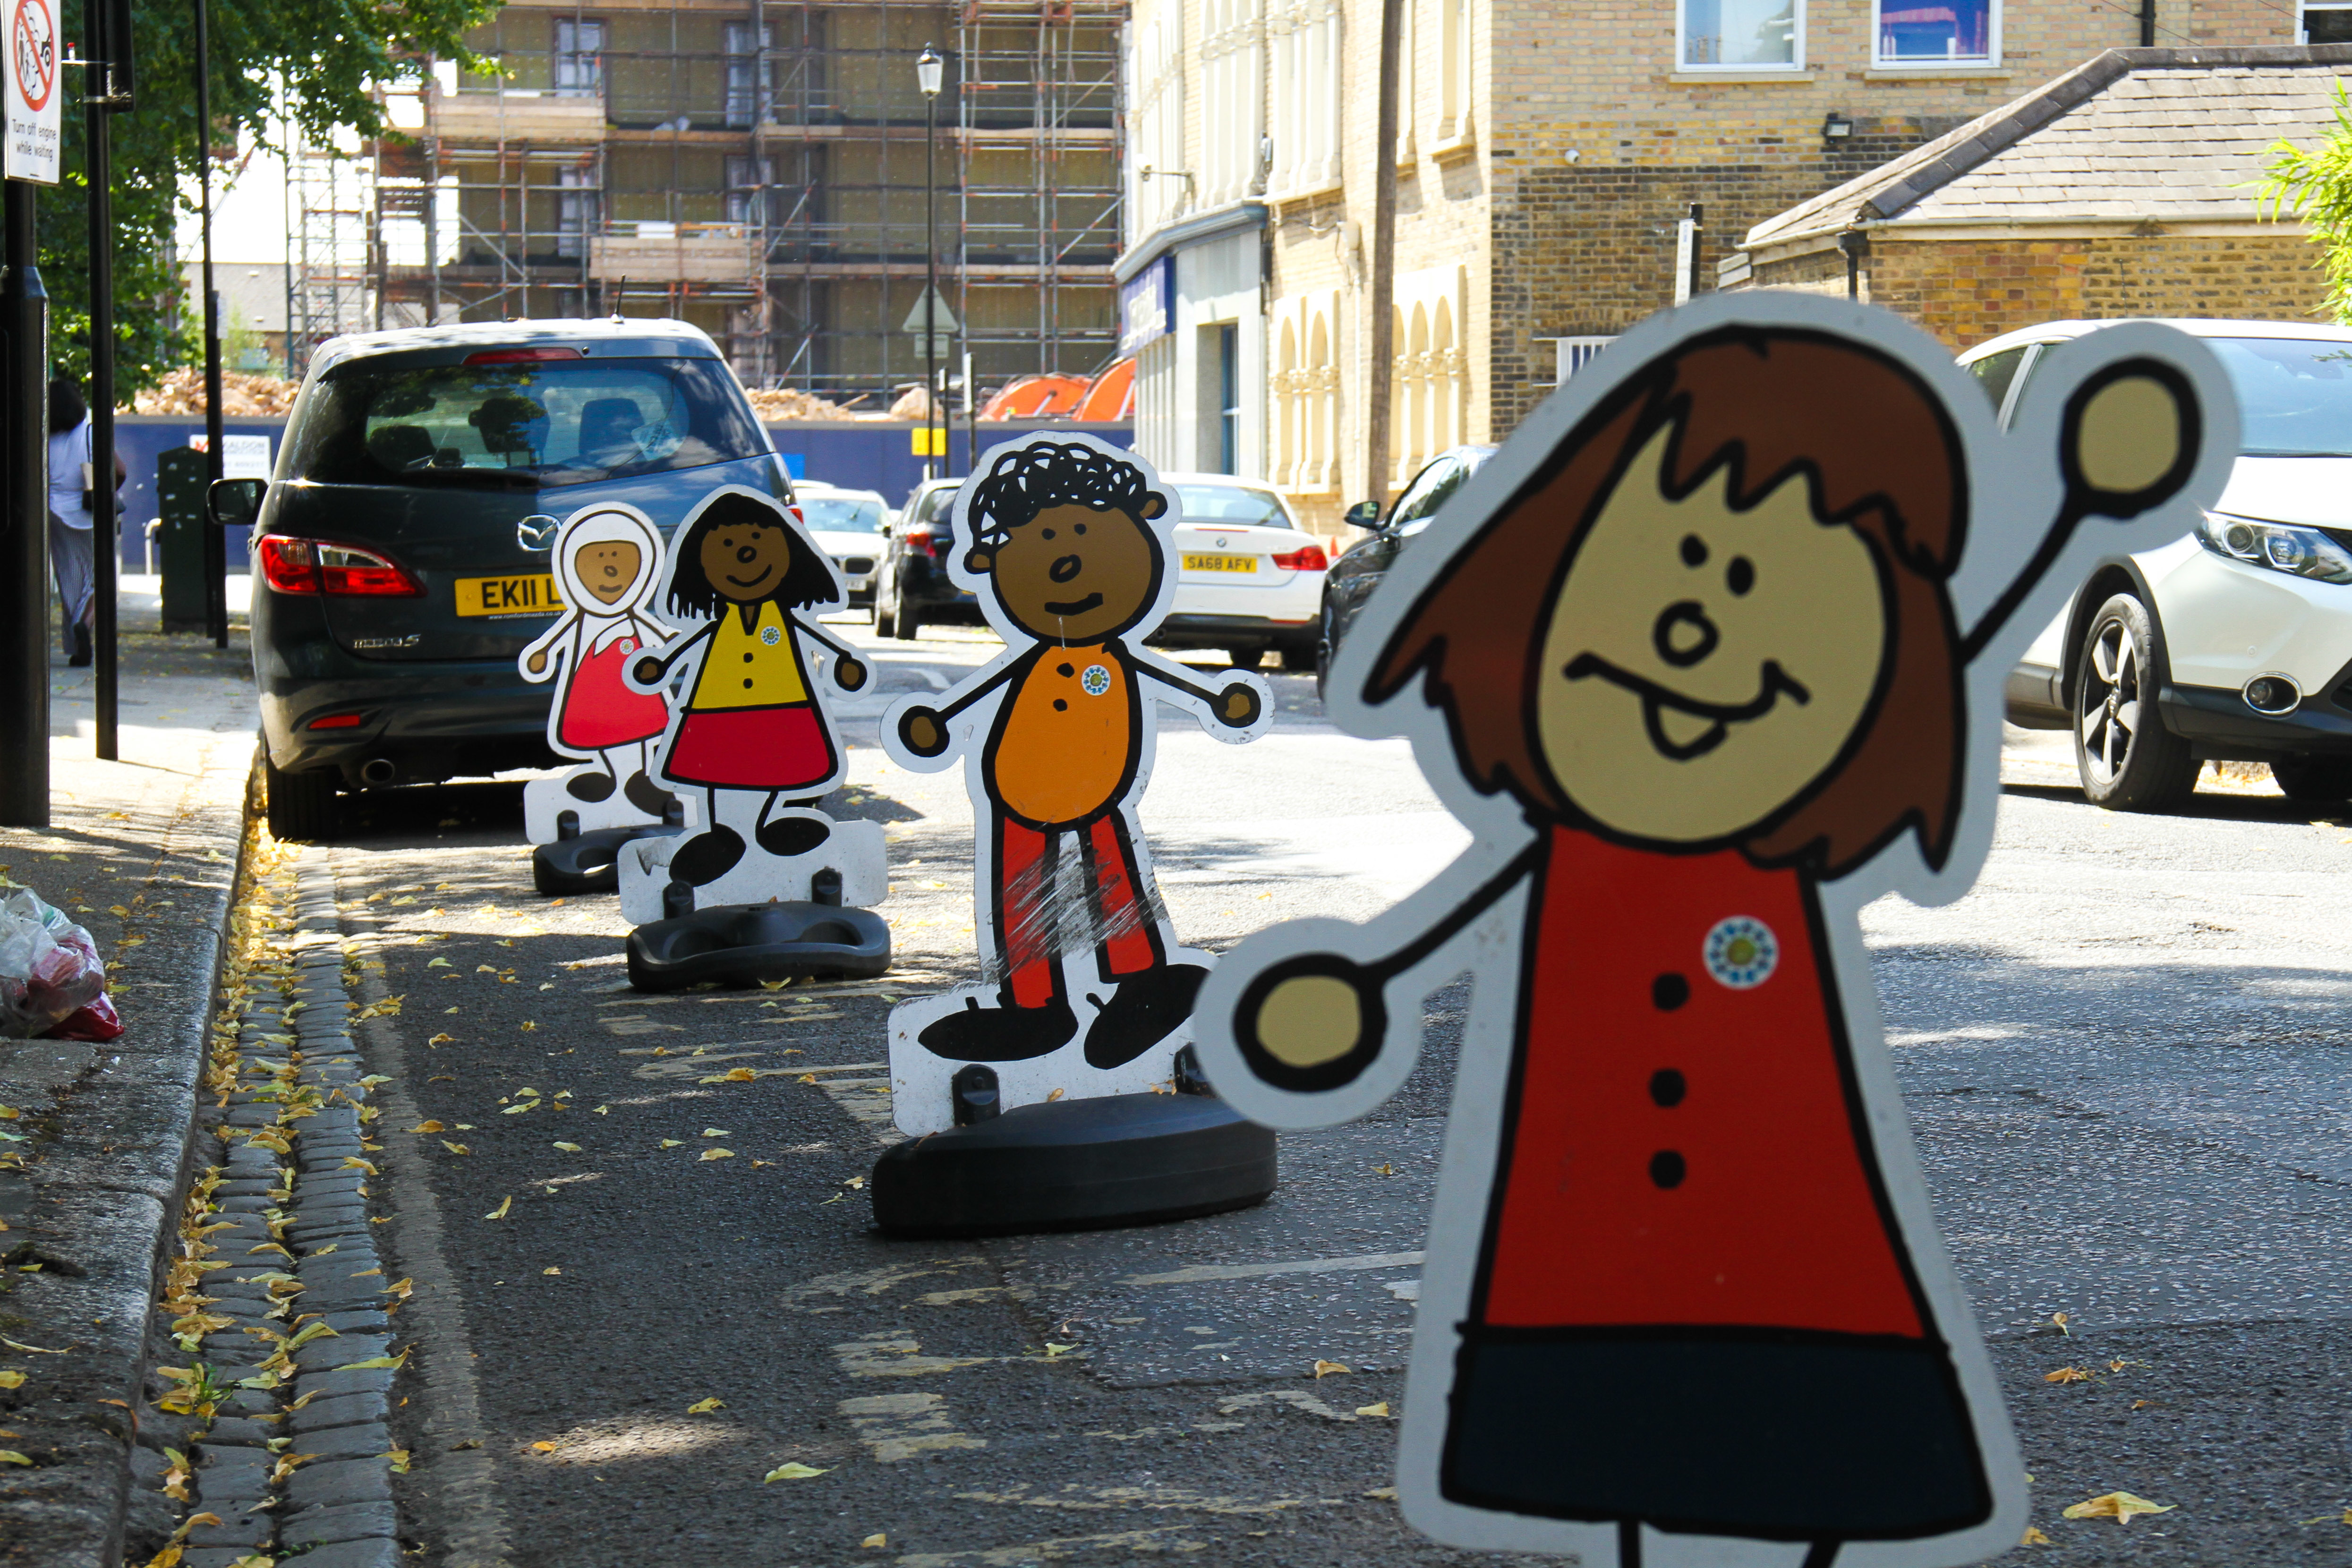 No Parking signs outside a pre-school in East London as most schools closed for the summer term to be reopened in September as per Government advice. (Photo by David Mbiyu / SOPA Images/Sipa USA)